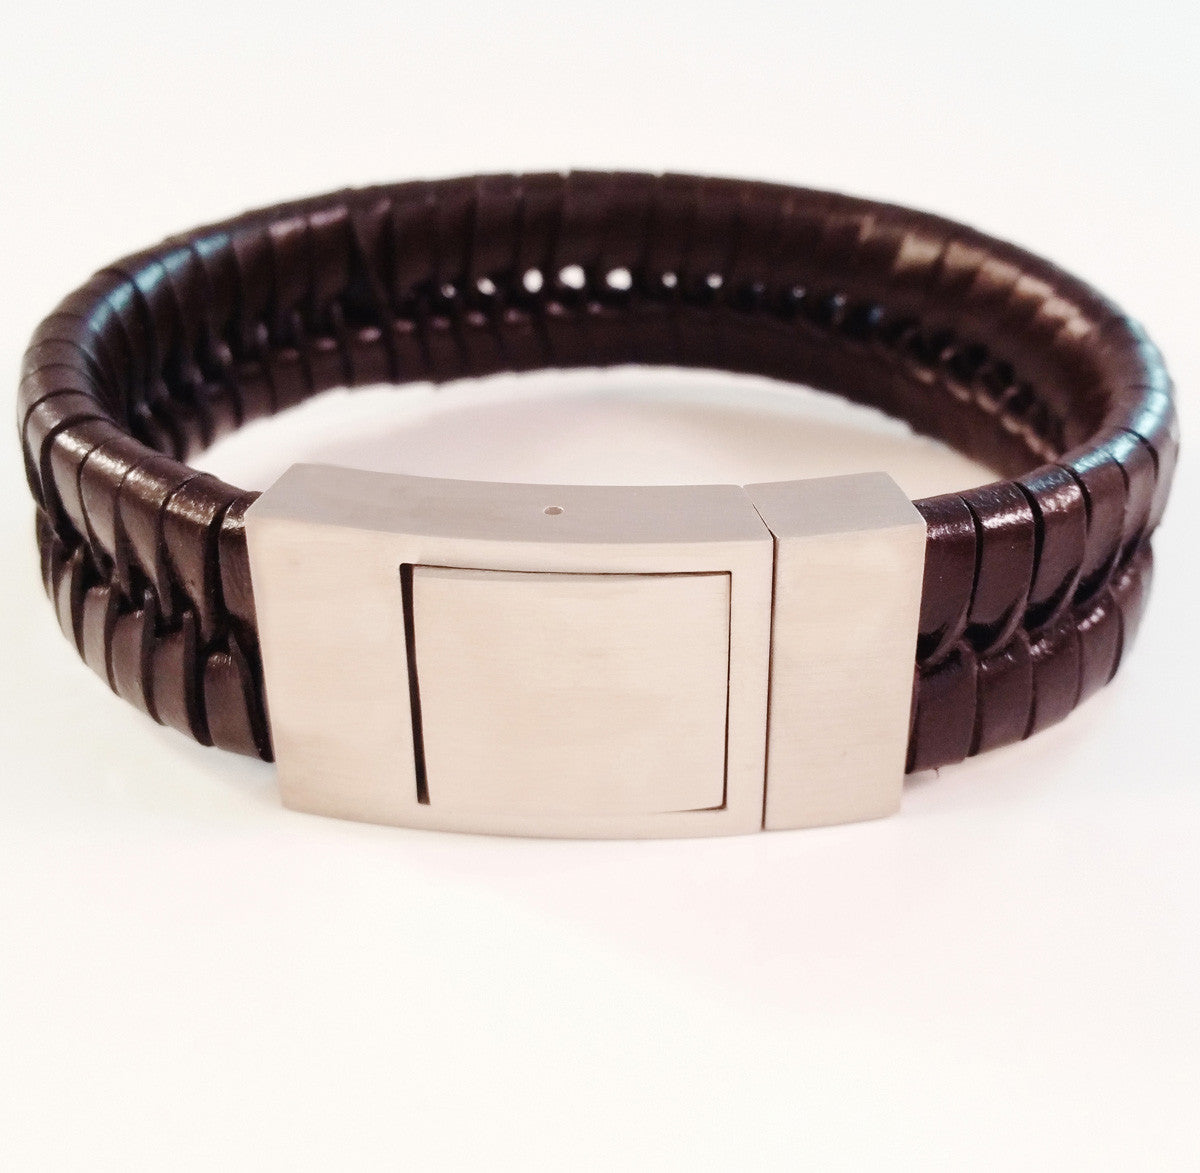 0b497719e34c4 MEN'S BROWN BRAIDED COW HIDE LEATHER BRACELET WITH BRUSHED STAINLESS ...